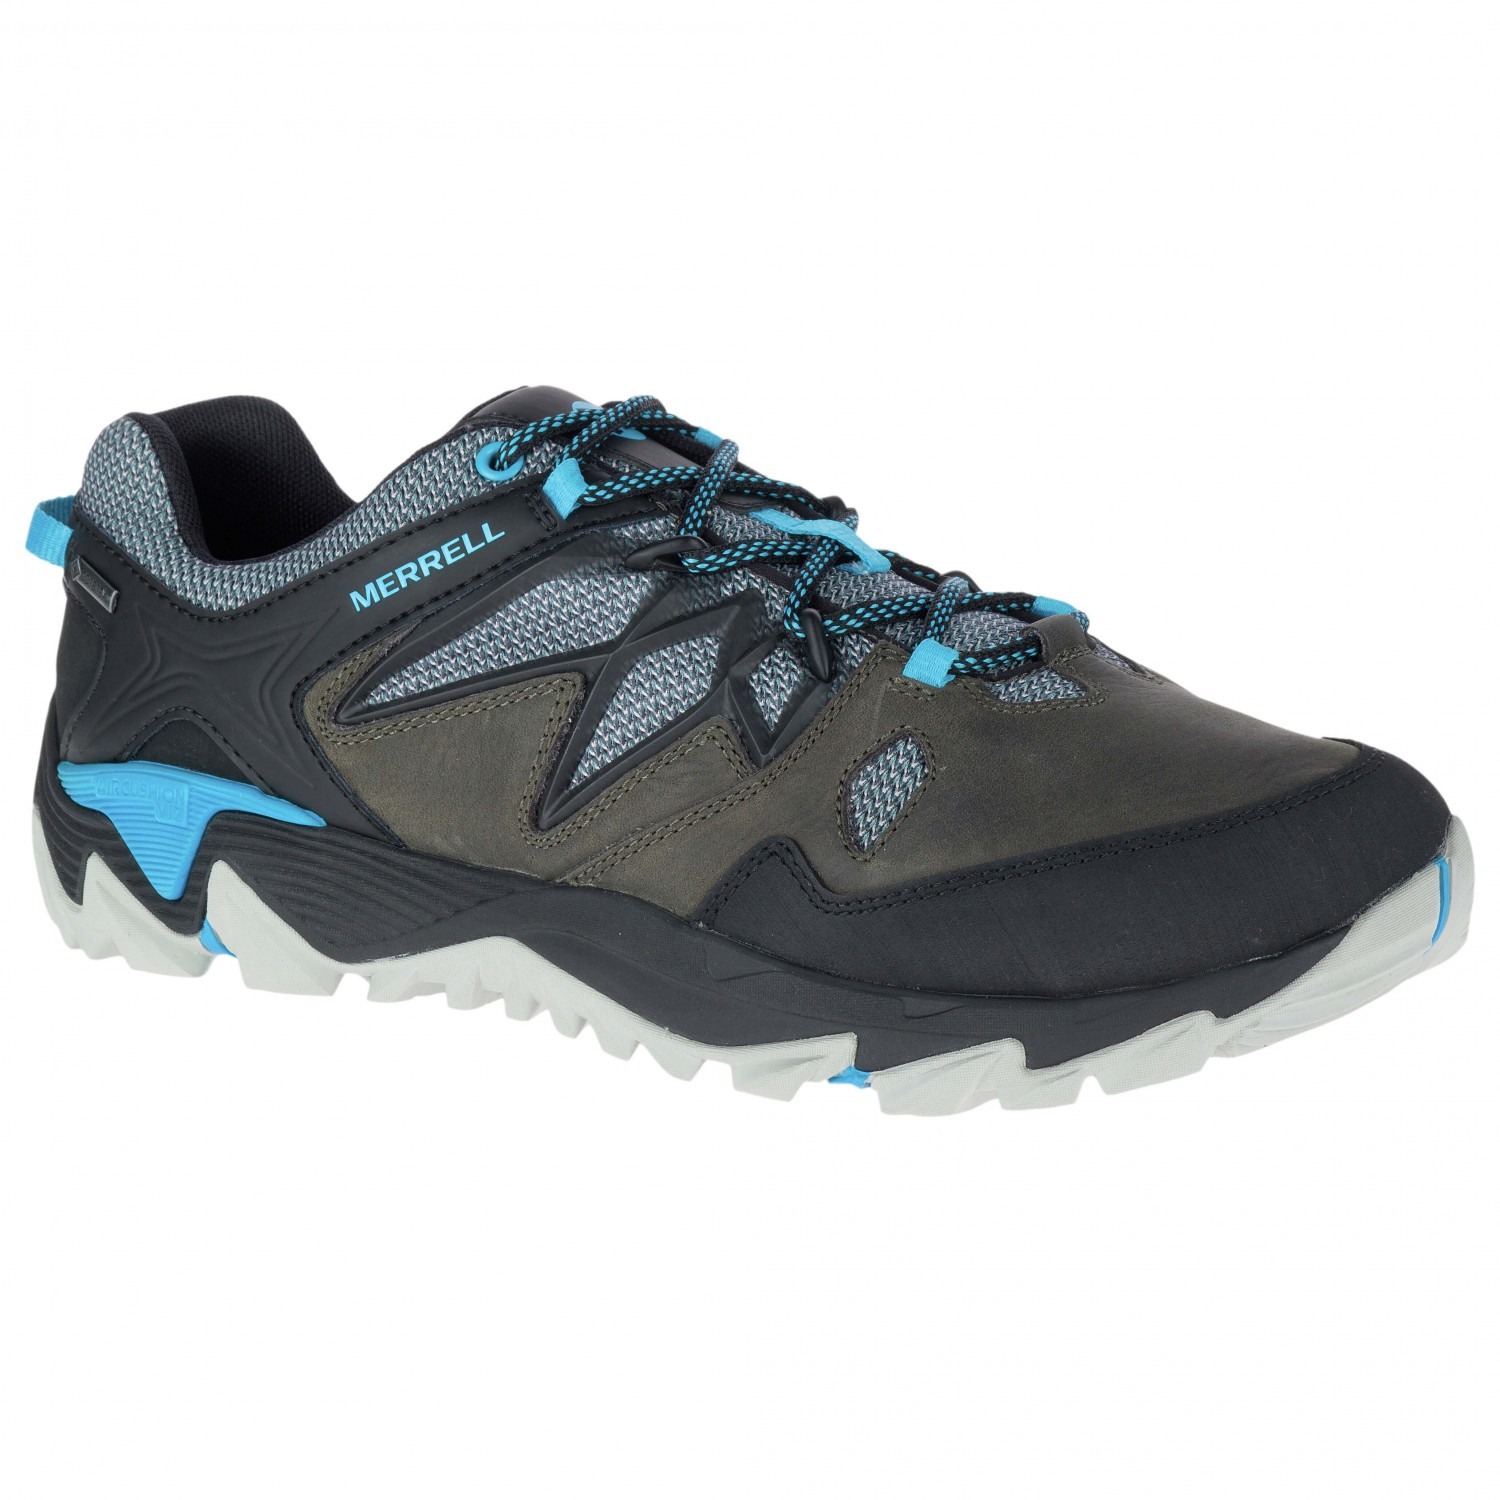 Merrell All Out Blaze 2 GTX Mens Waterproof Goretex Walking Trainers Shoes